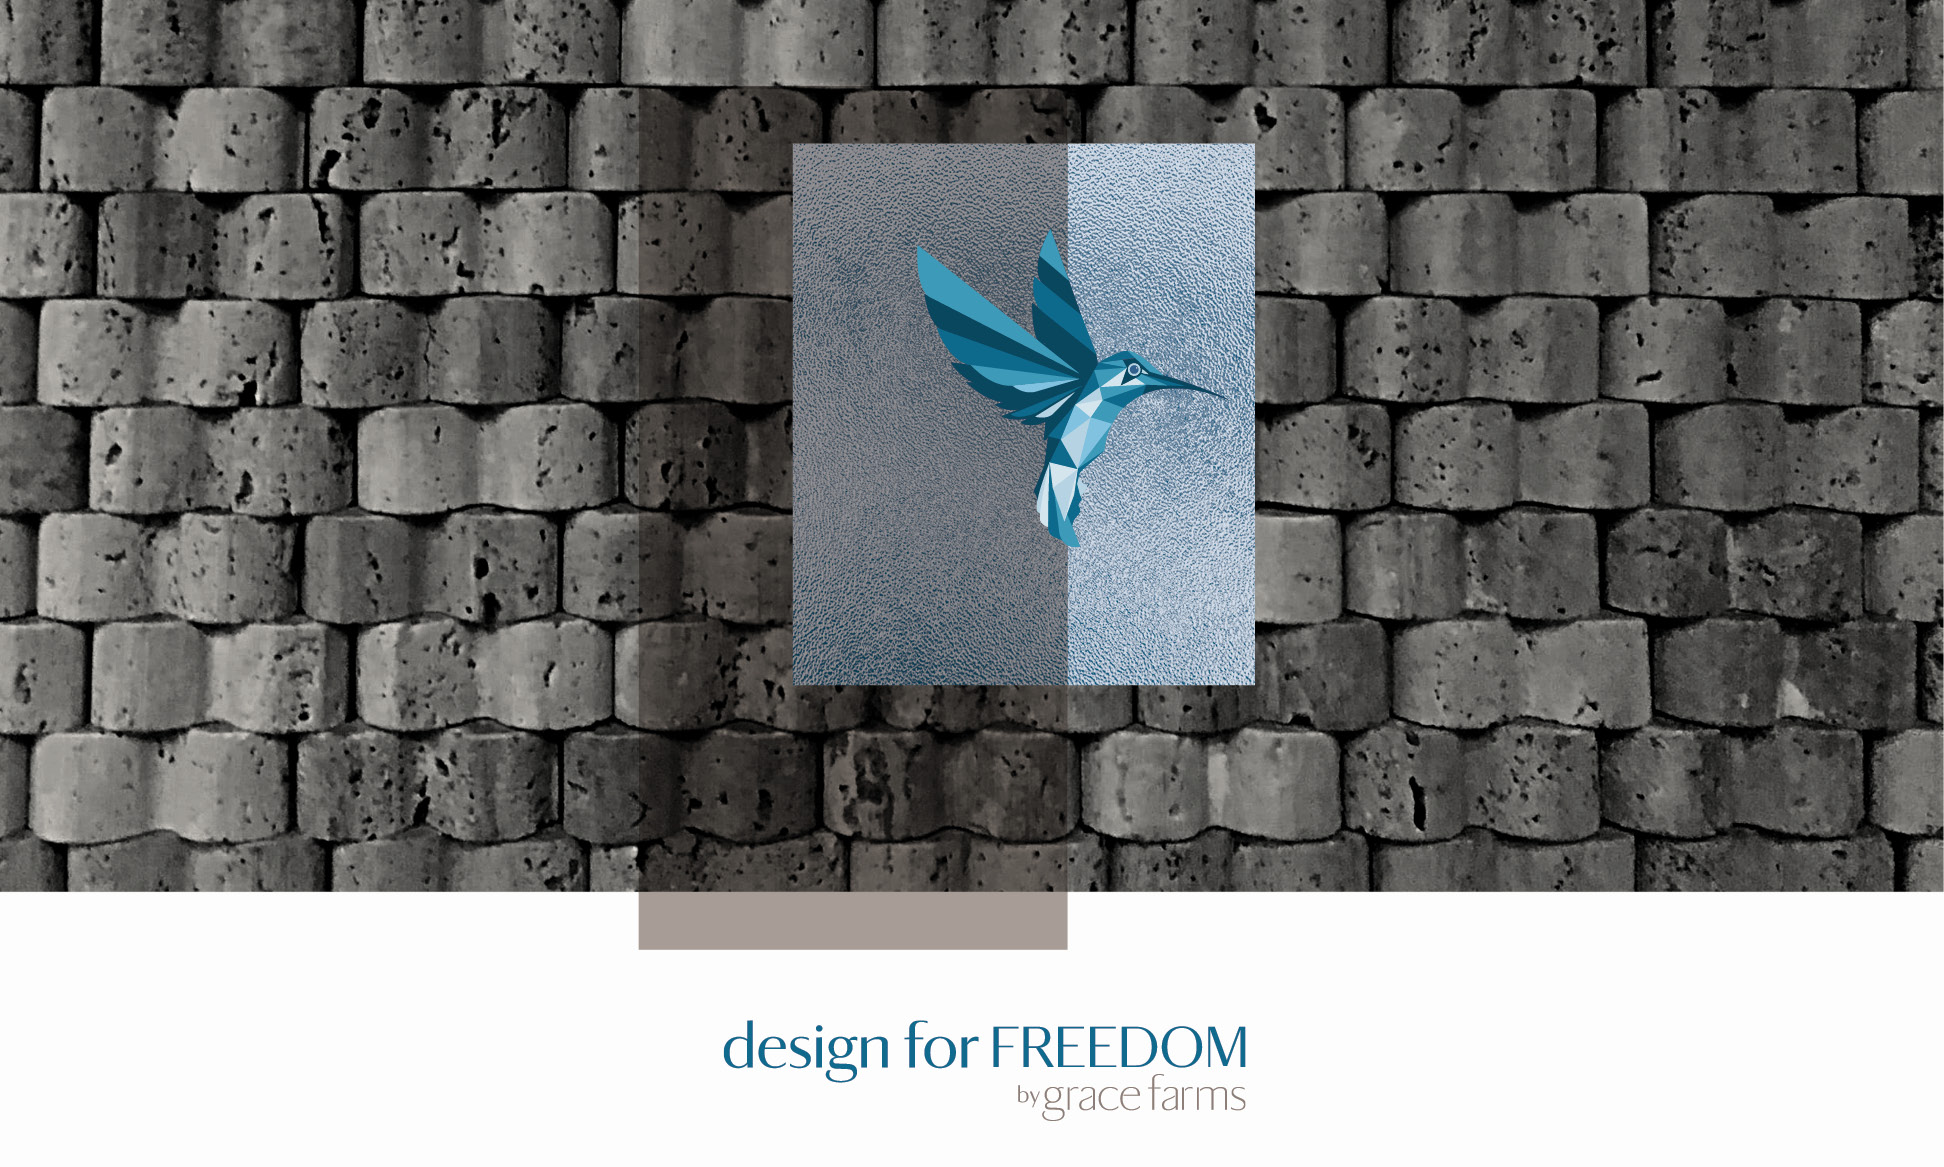 <p>Design for Freedom Report</p>